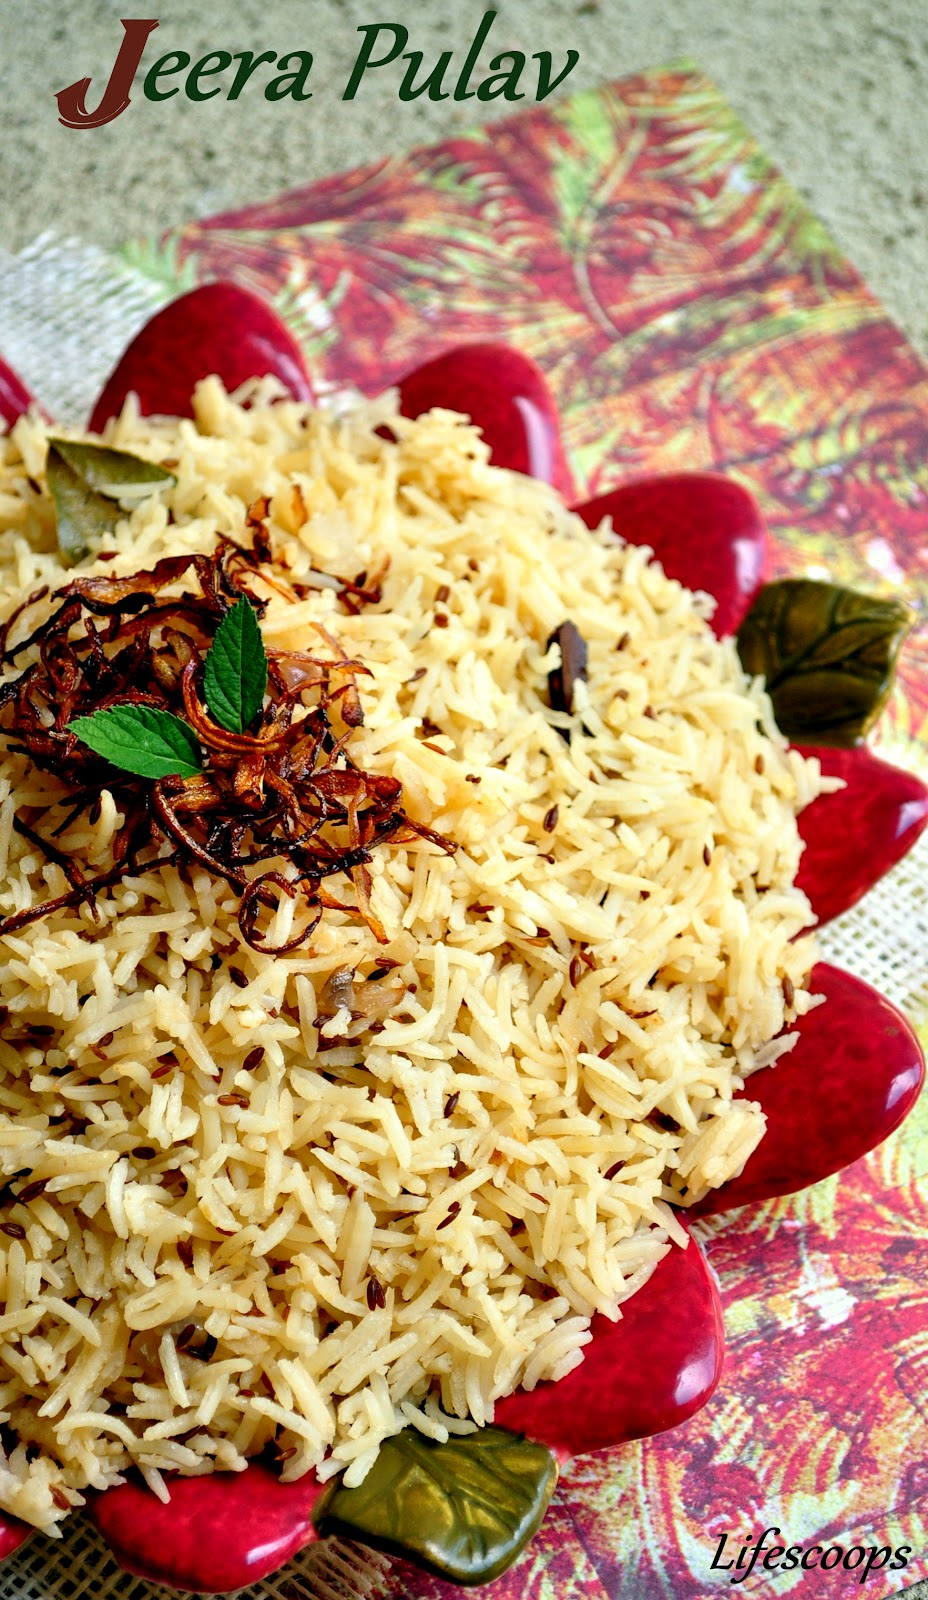 Life Scoops: Jeera Pulav (Rice) / Cumin flavored Basmati Rice